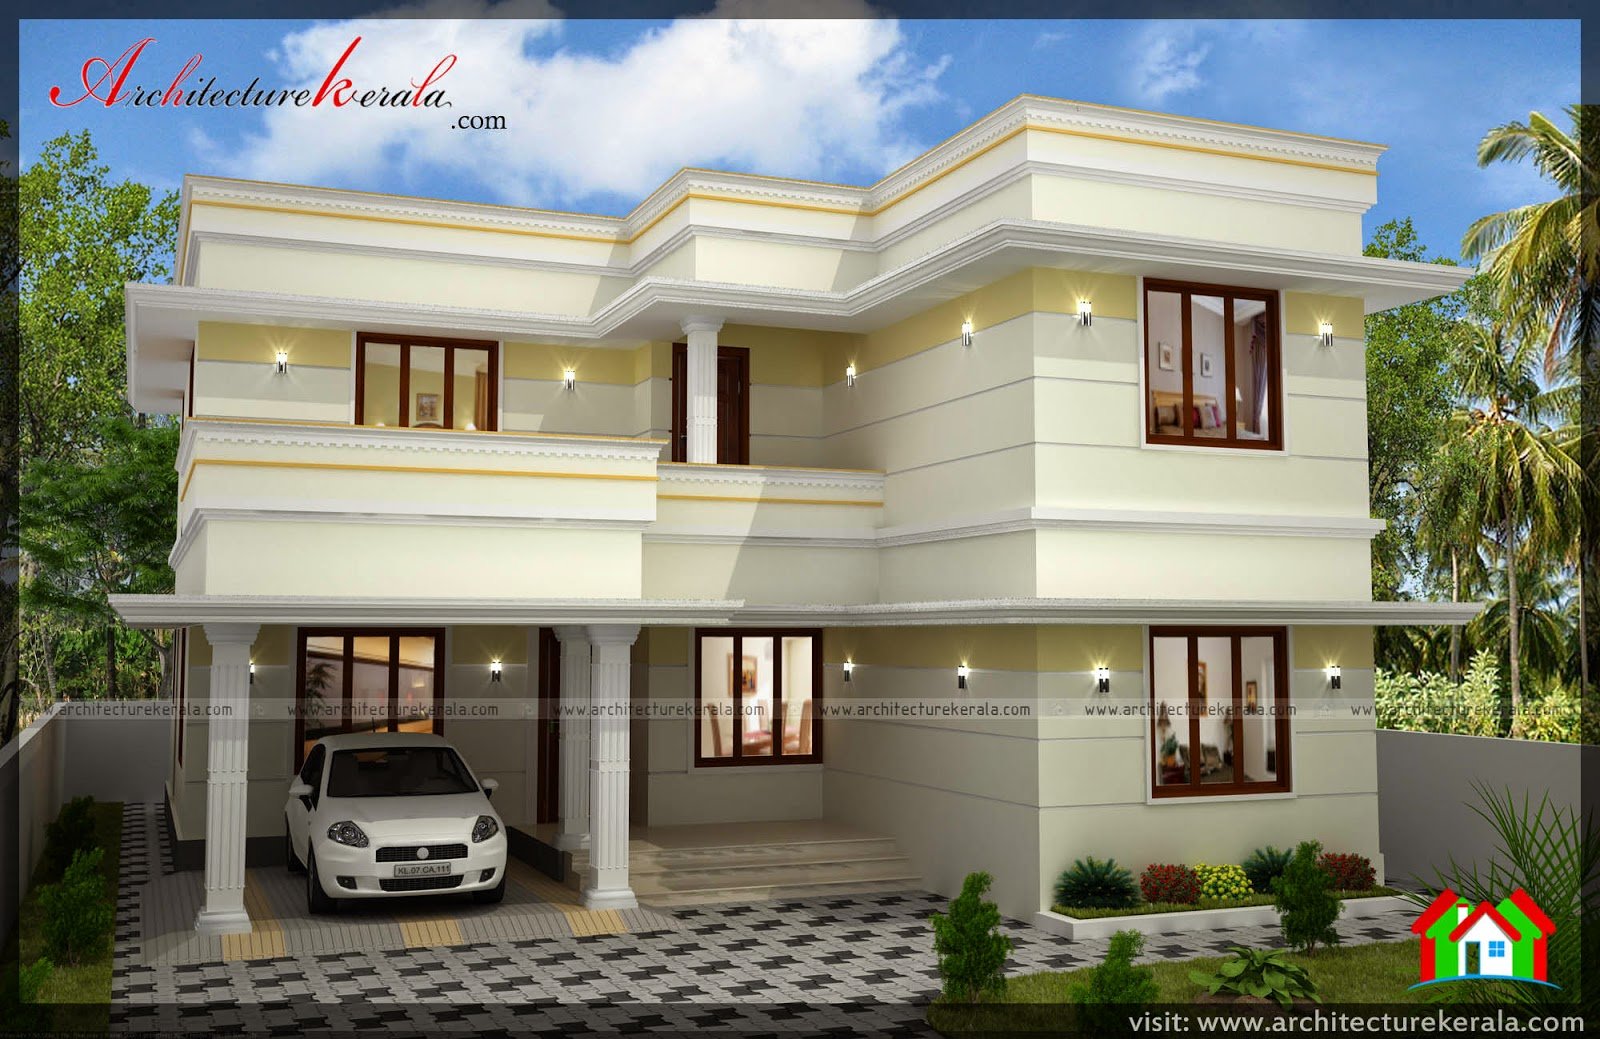 Two Storey House Plan And Elevation : Three bedroom two storey house plan architecture kerala